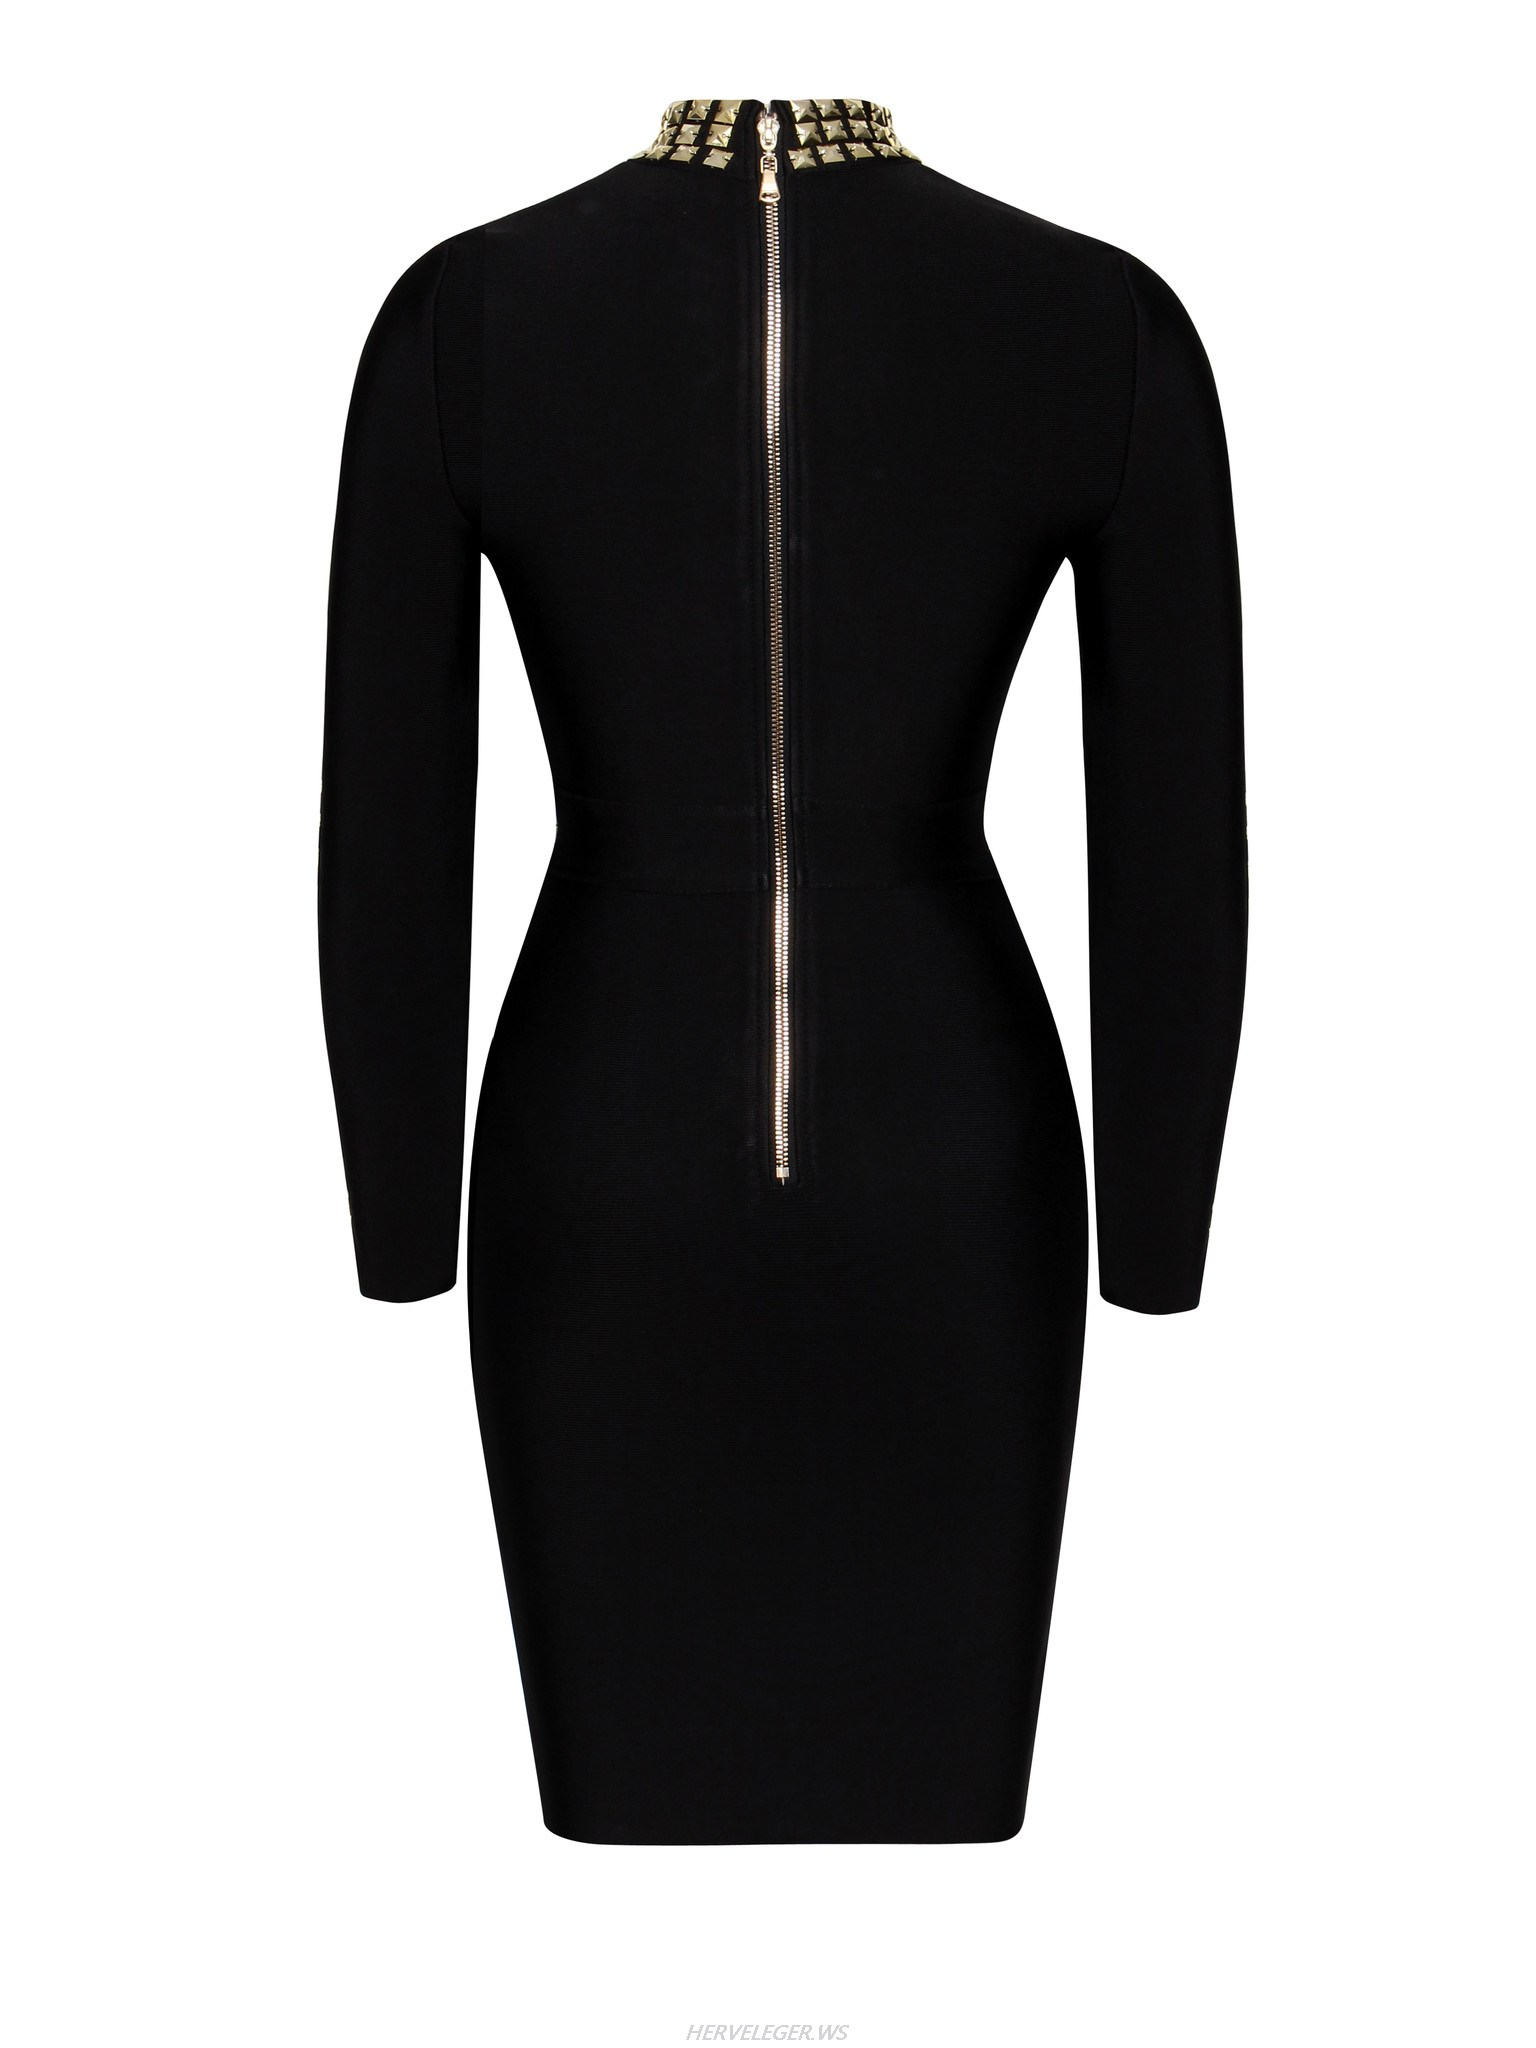 Herve Leger Black And Gold Stud Long Sleeve Dress